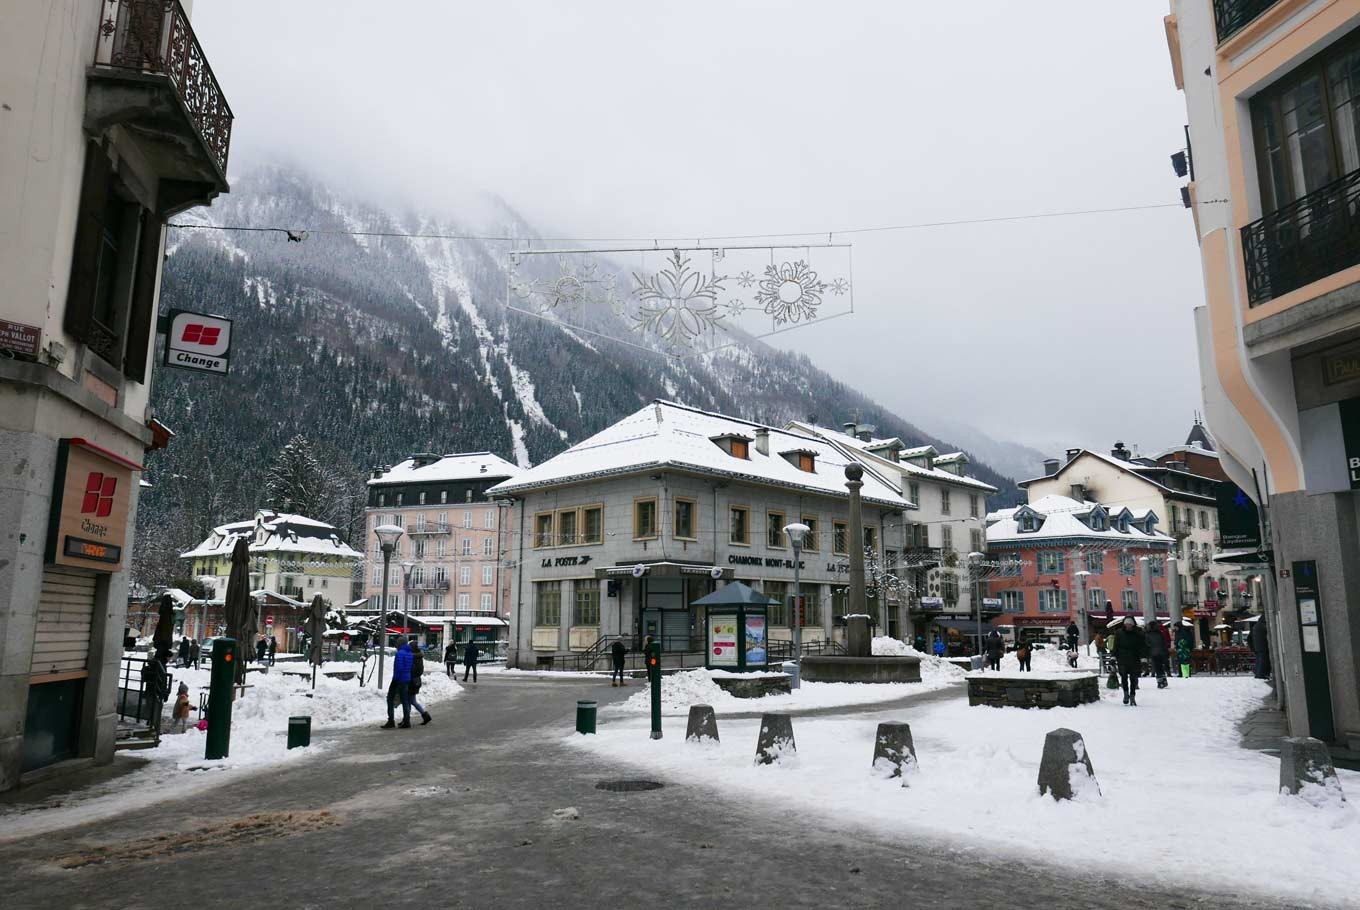 The quaint city of Chamonix Mont-Blanc, with its picturesque mountainous background, is home to about 10,000 residents. In high seasons (mainly summer and winter holidays), the population can increase up to 100,000 to 130,000 which encompasses seasonal workers and tourists.